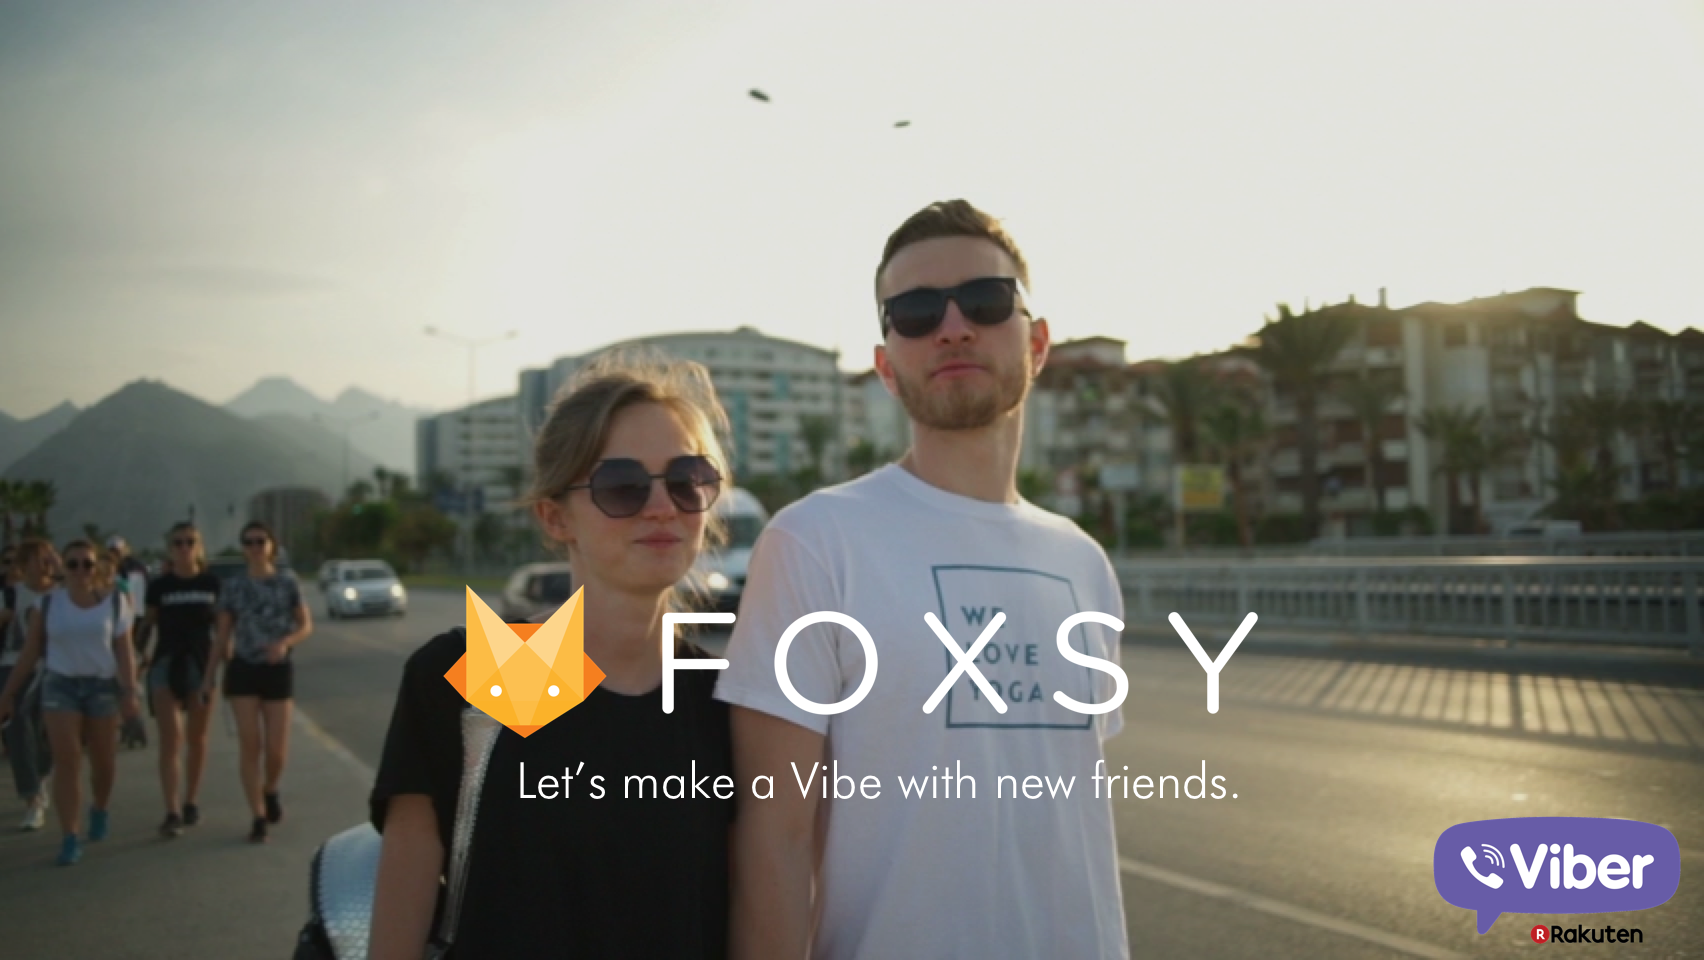 Social Matchmaking Chatbot Foxsy Is Now Available On Viber